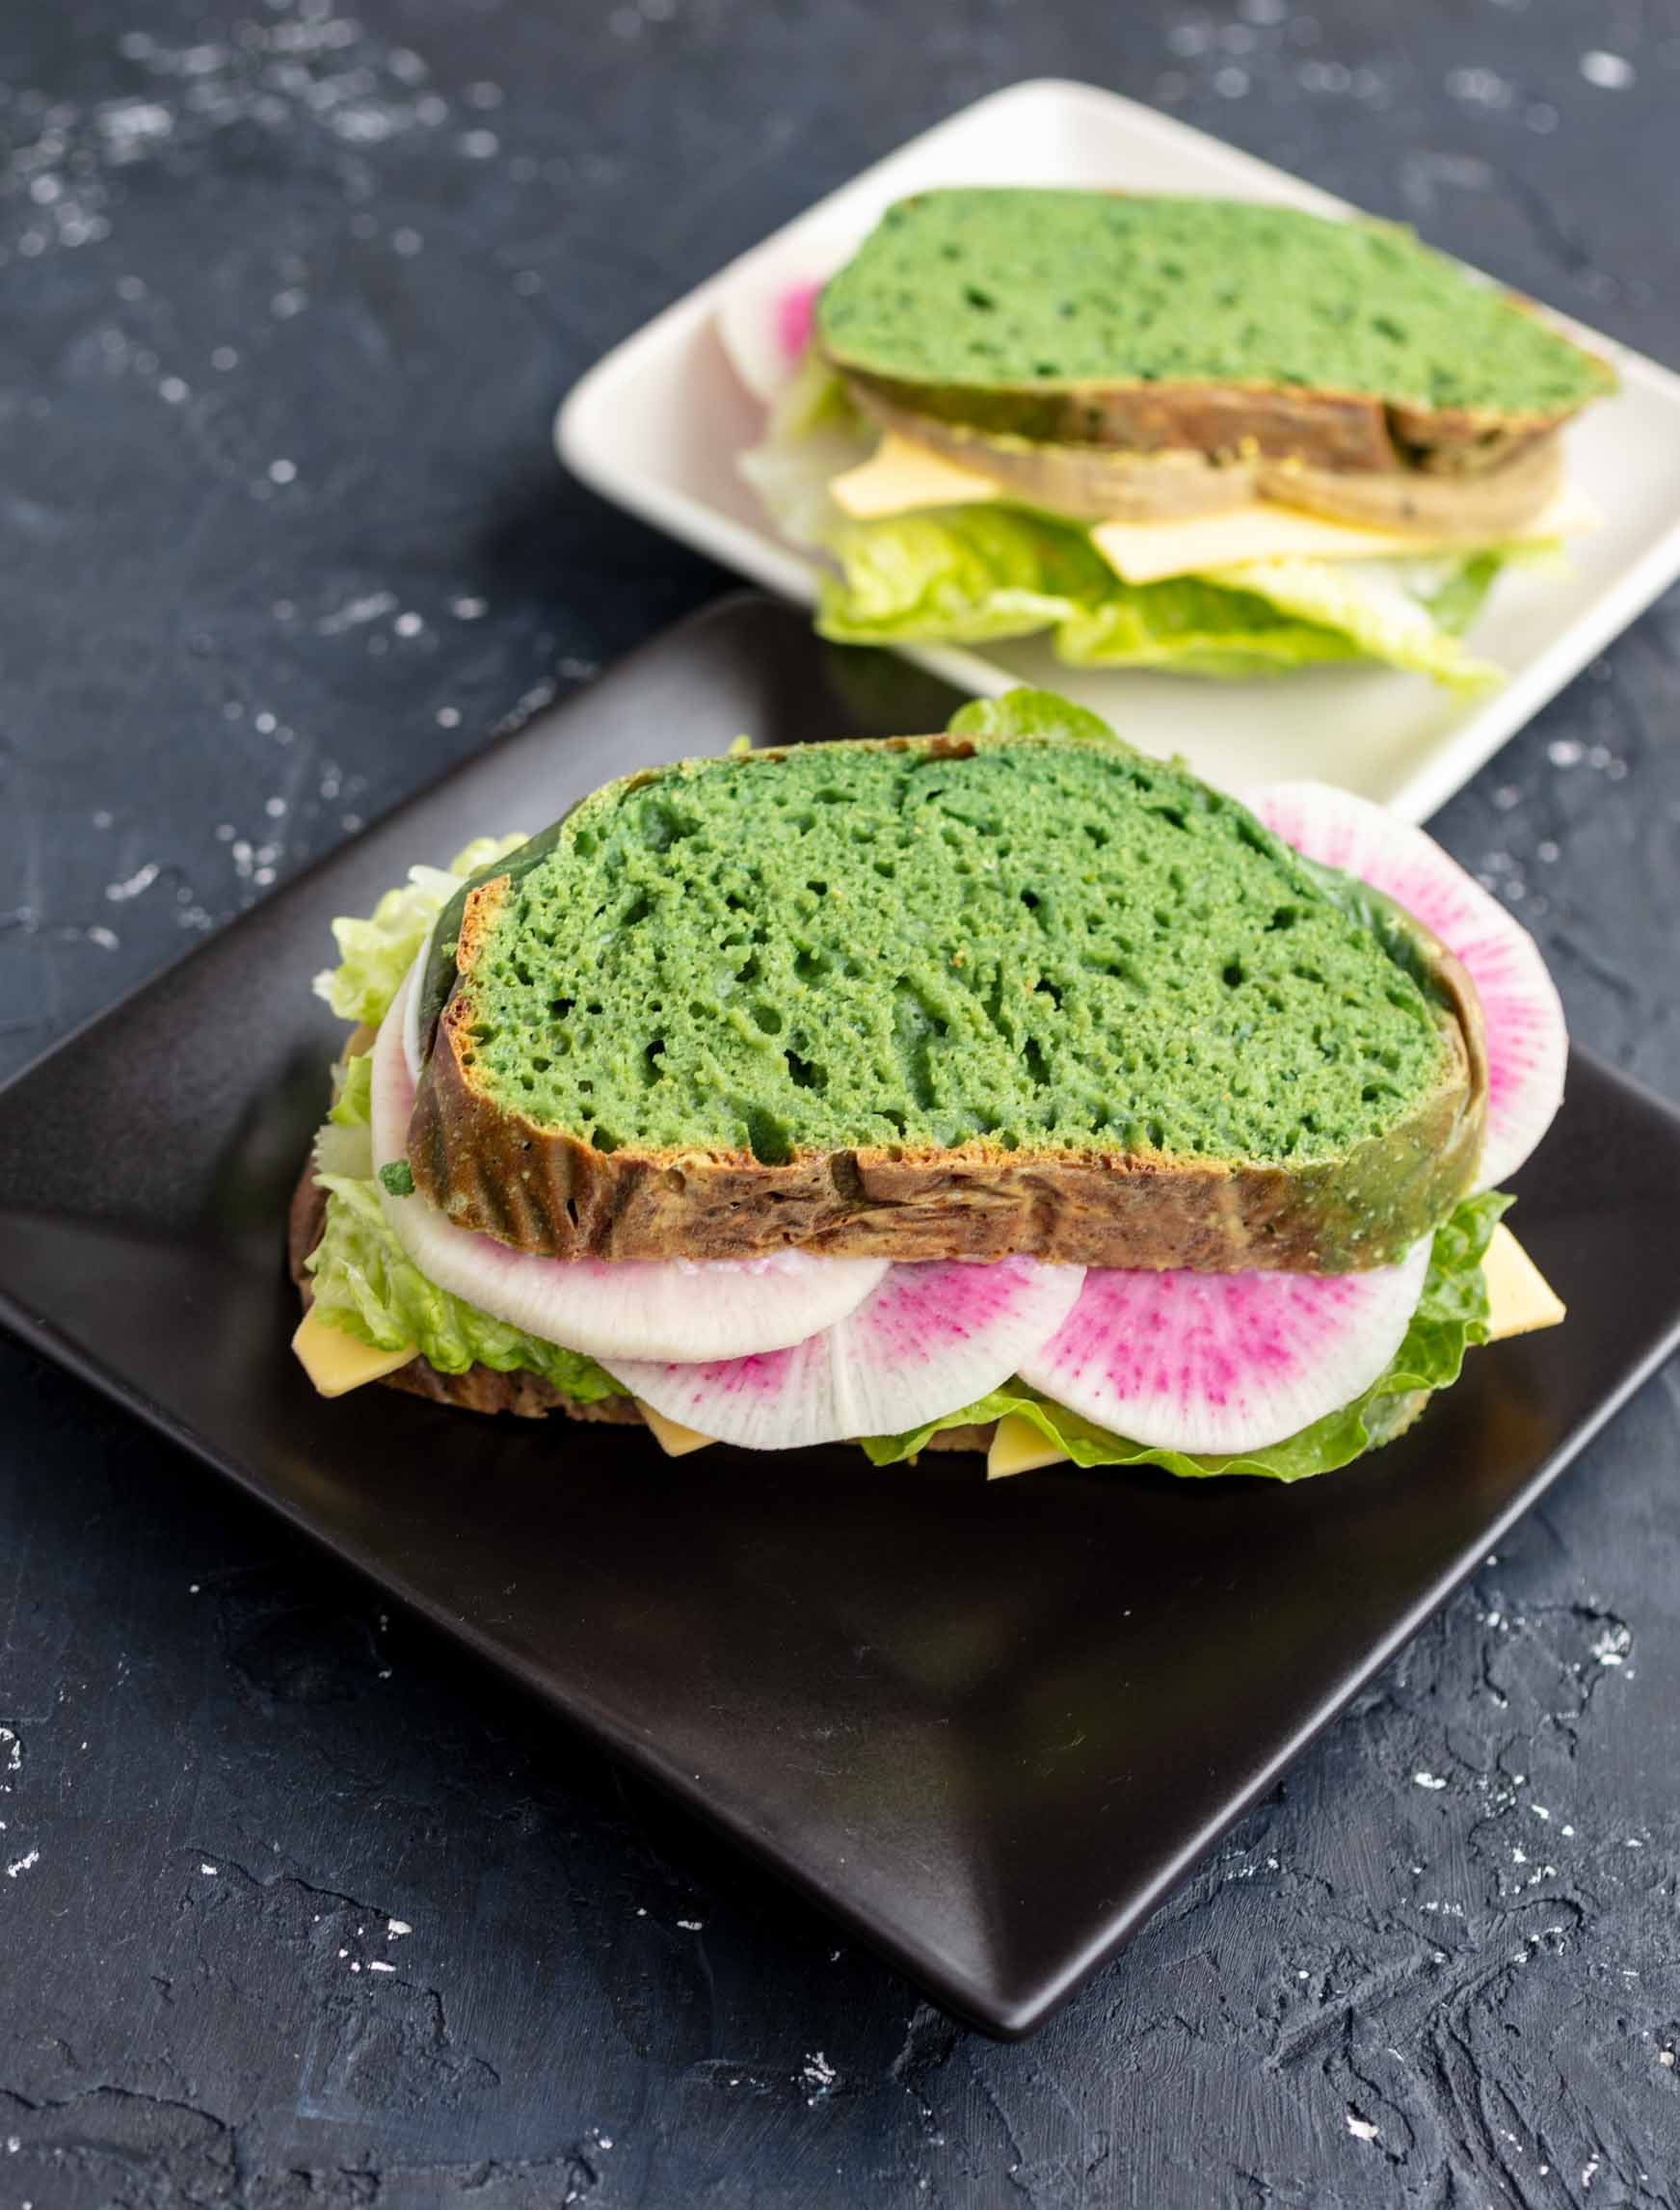 vegan sandwich made with naturally colored green bread